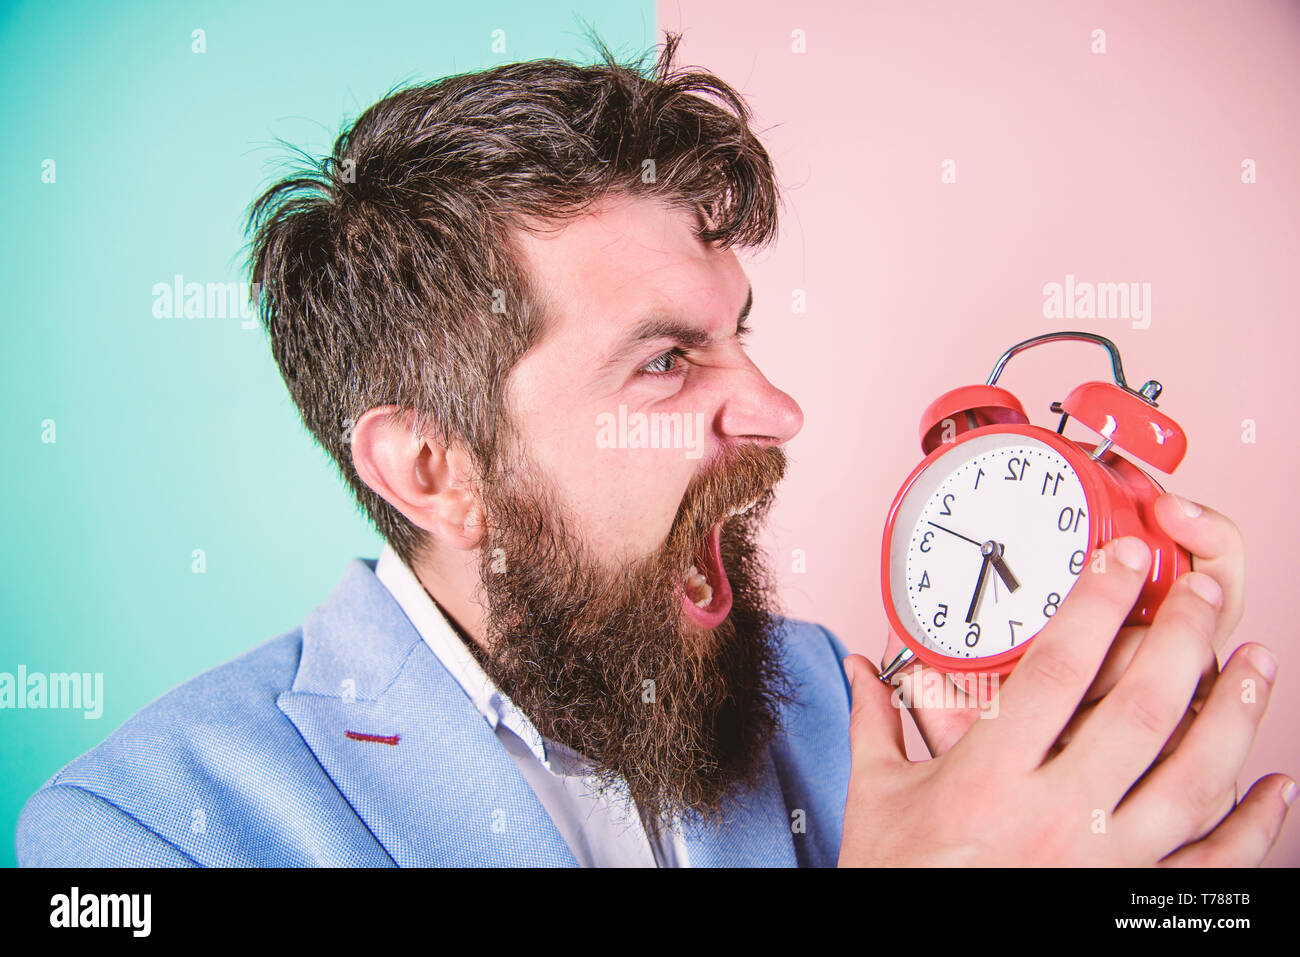 Time management skills. How much time till deadline. Time to work. Man bearded aggressive businessman hold clock. Stress concept. Hipster stressful working schedule. Businessman has lack of time. - Stock Image